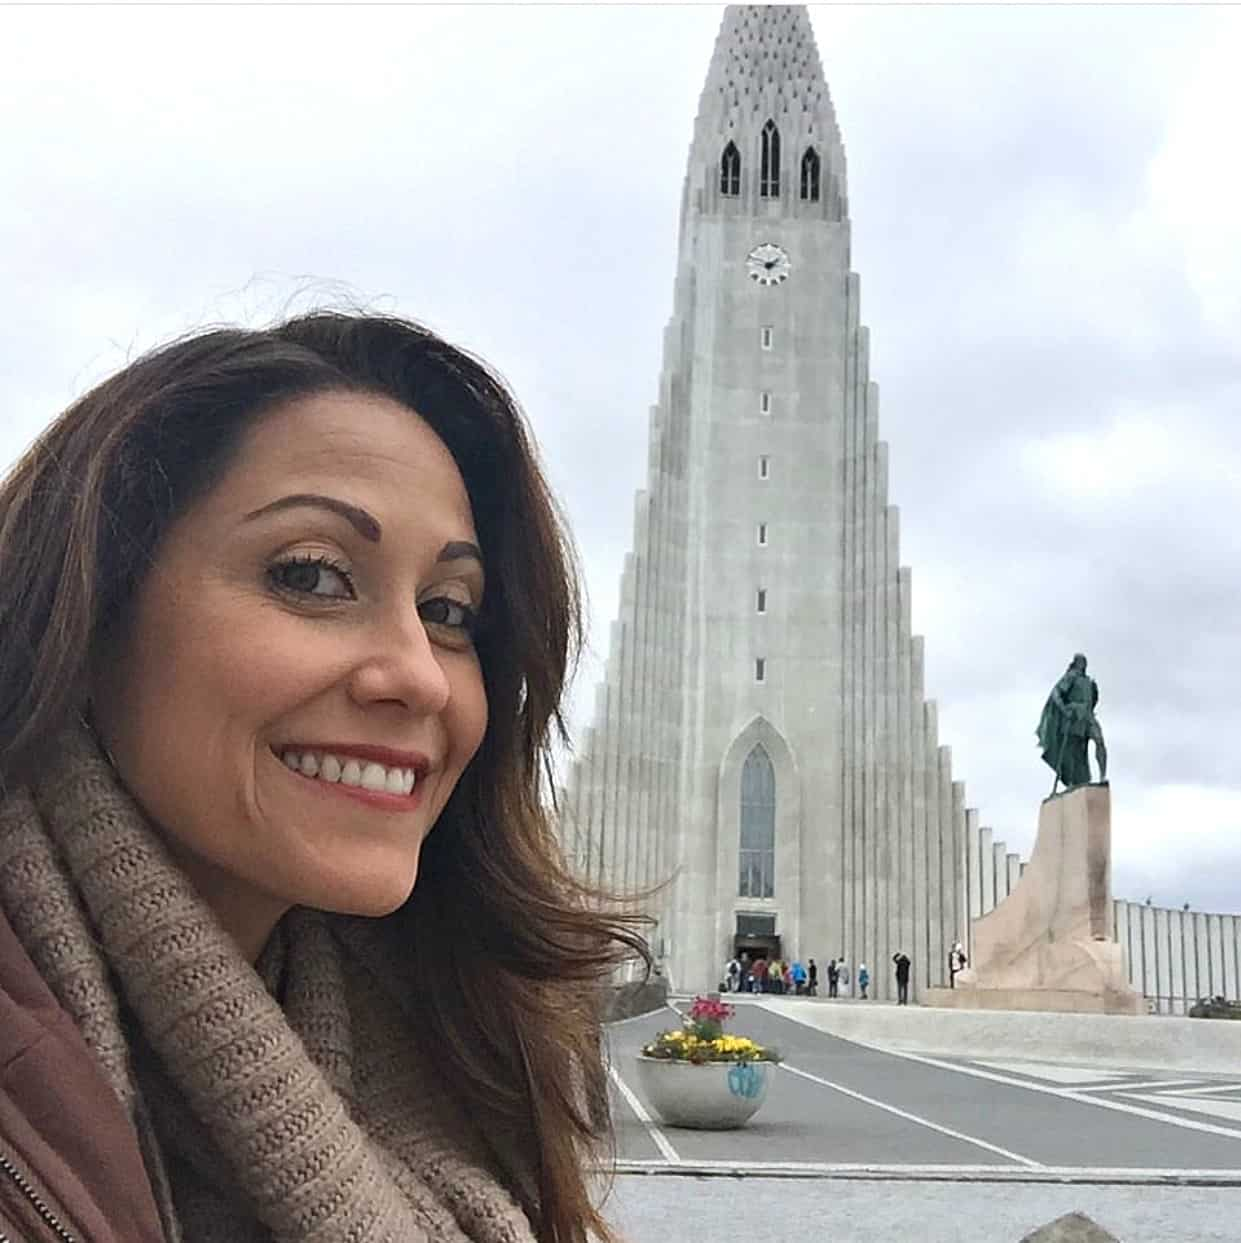 Traveling the world for her favorite vegan eats, here's Swoon Talent's Carolyn Scott-Hamilton in Iceland.